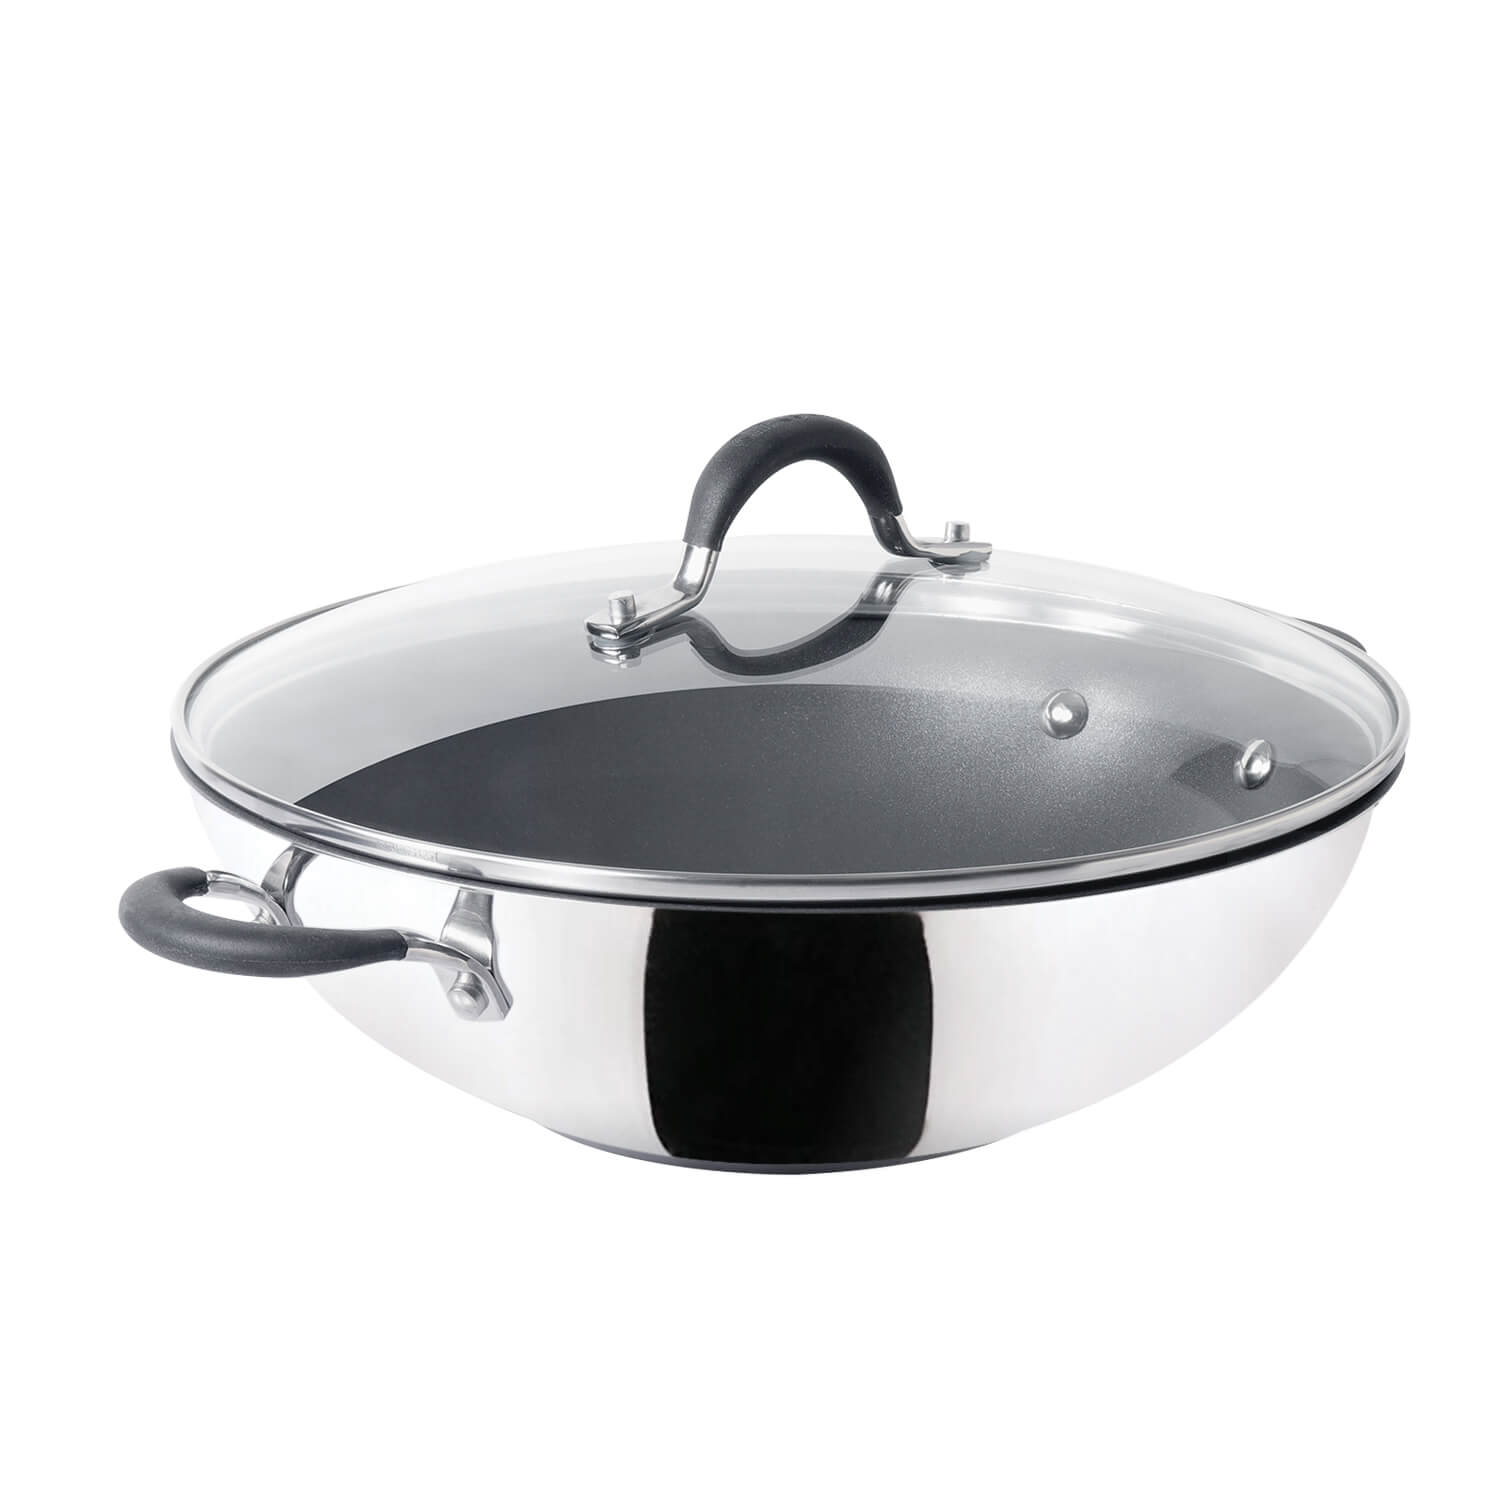 Circulon Momentum 32cm Non-Stick Kadai/Wok with Lid - Pots and Pans